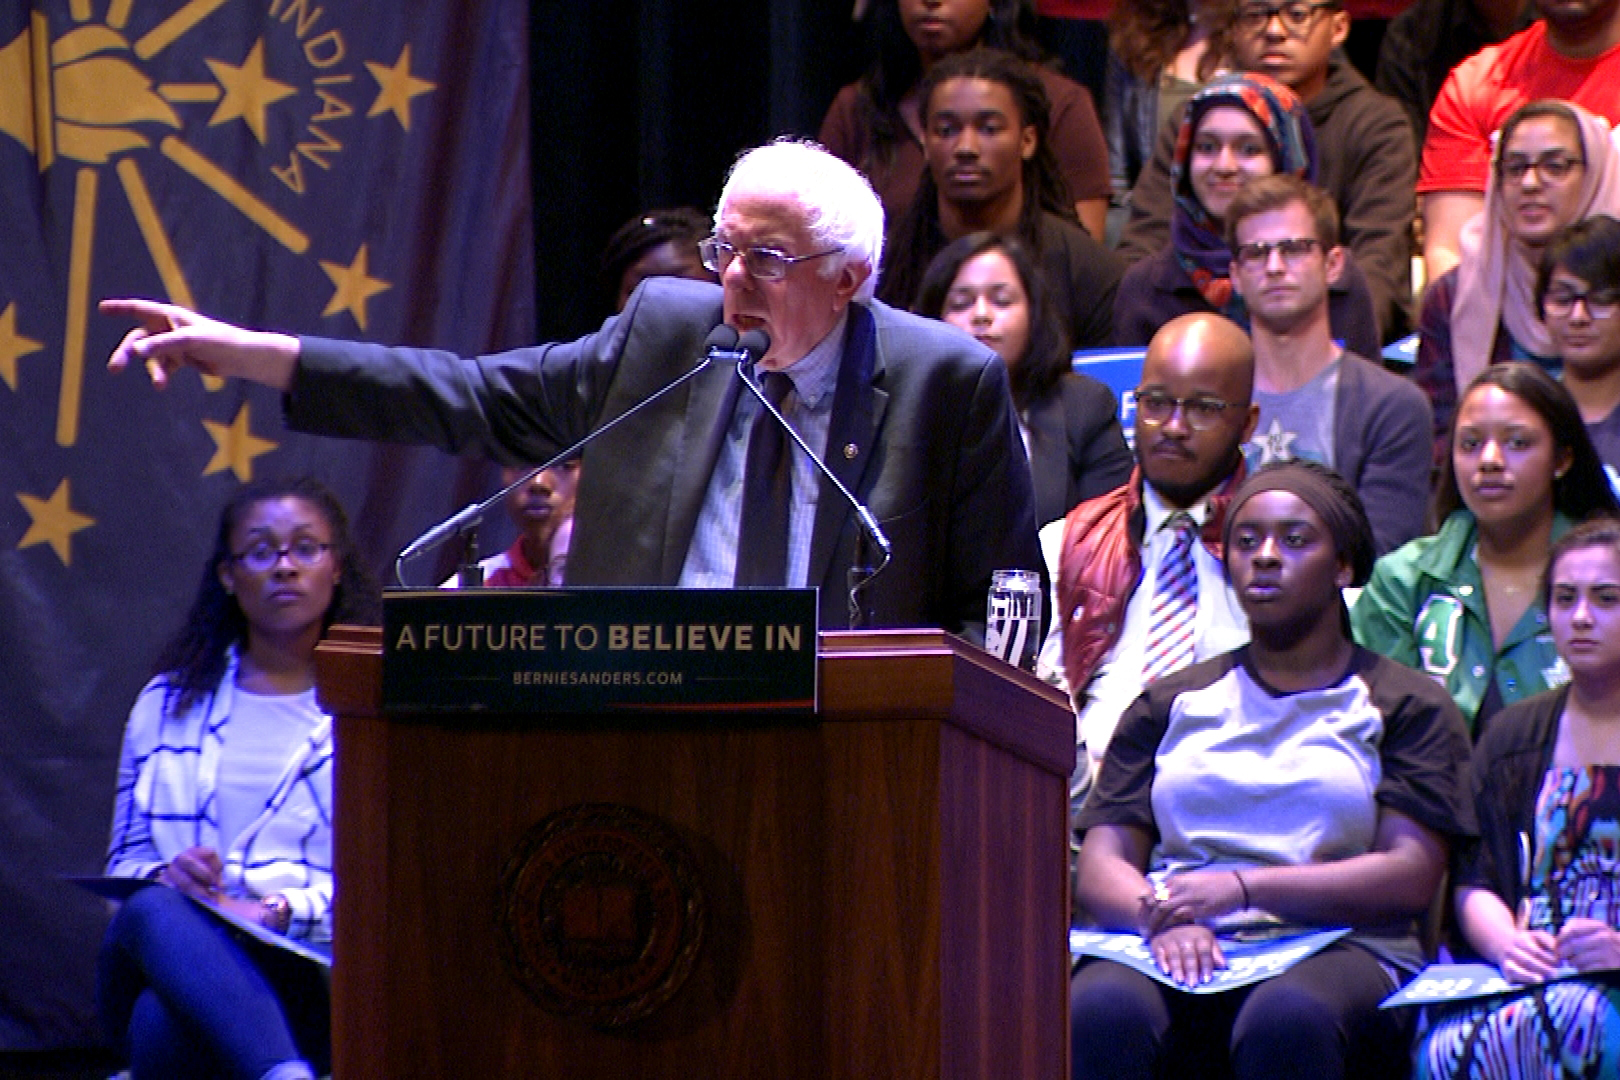 Bernie Sanders at a rally in Bloomington.